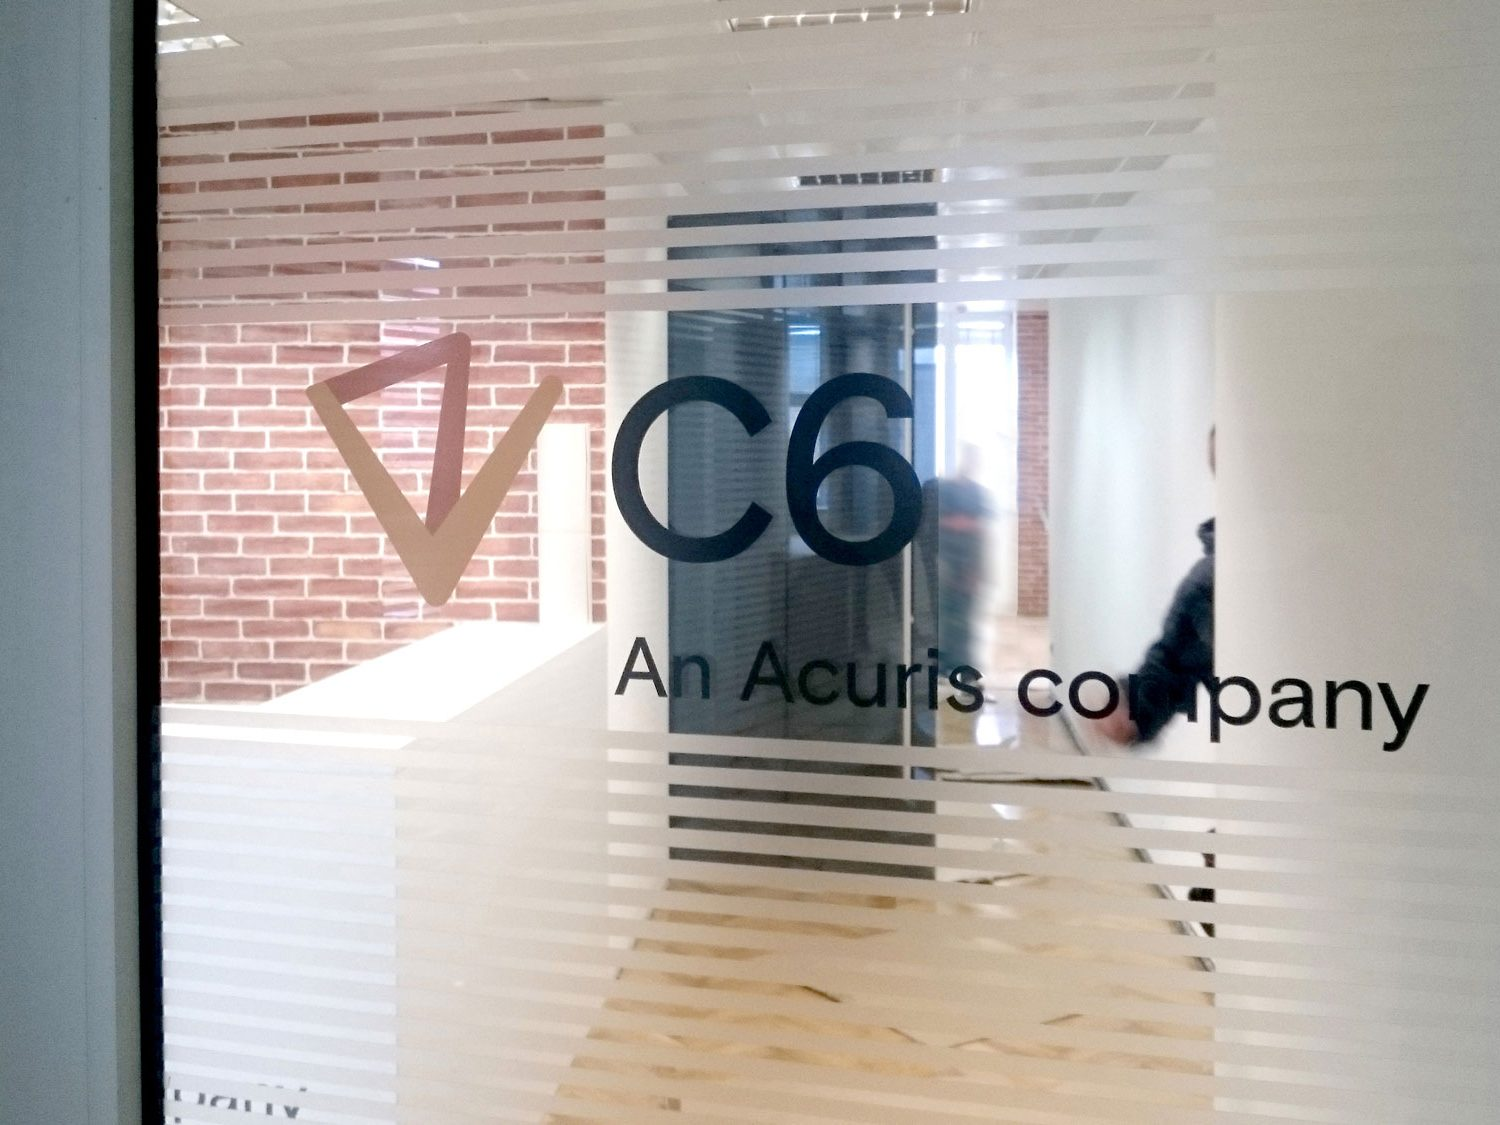 Glass door branded with C6's logo